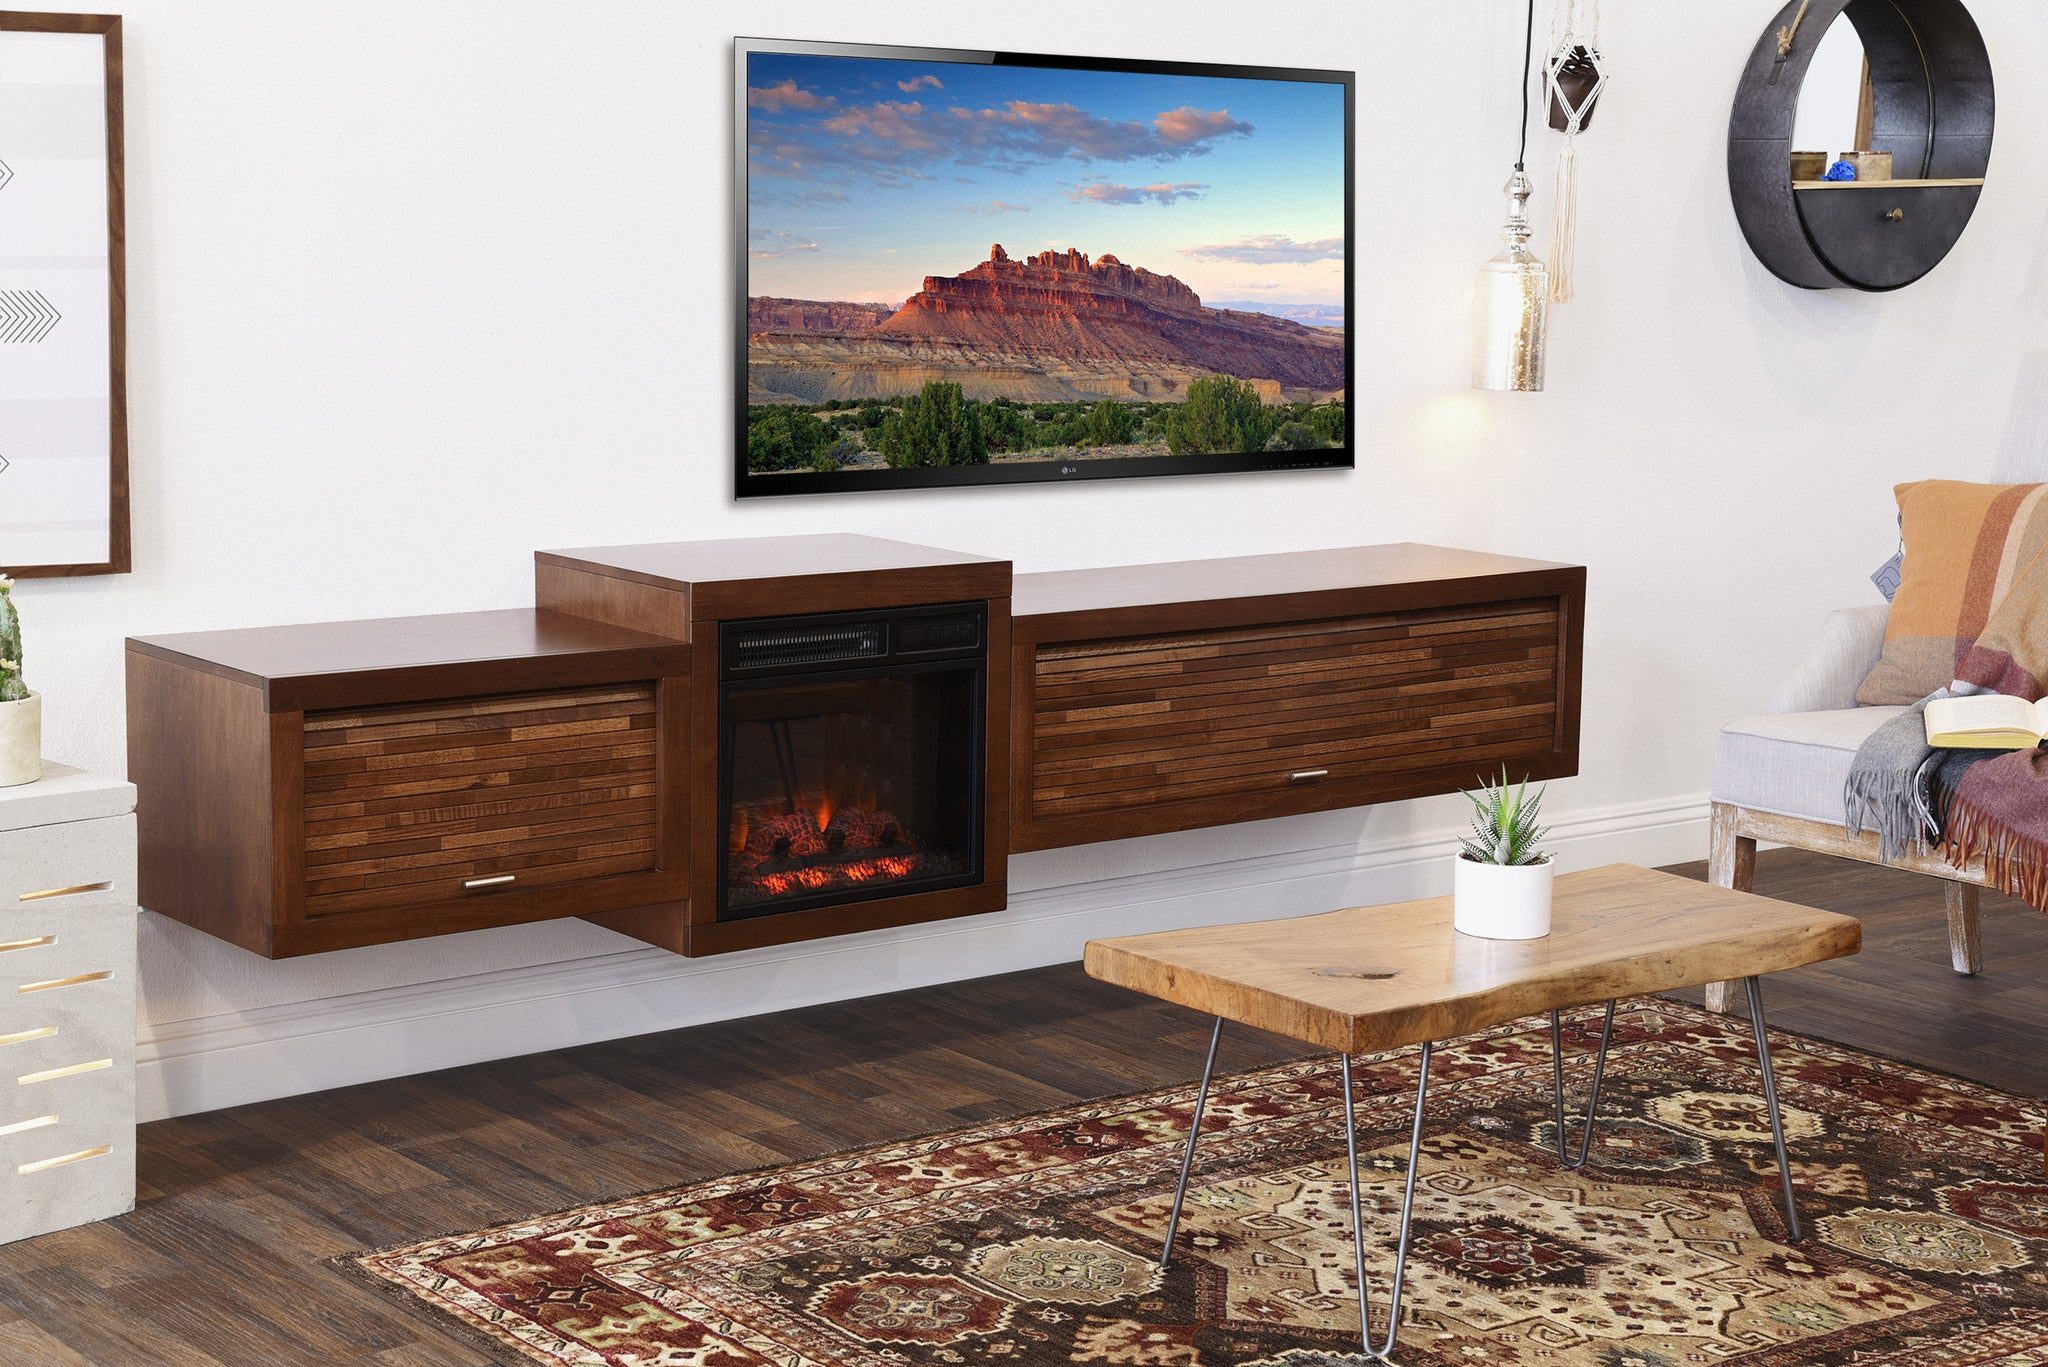 Delicieux Floating TV Stand With Fireplace   ECO GEO Mocha